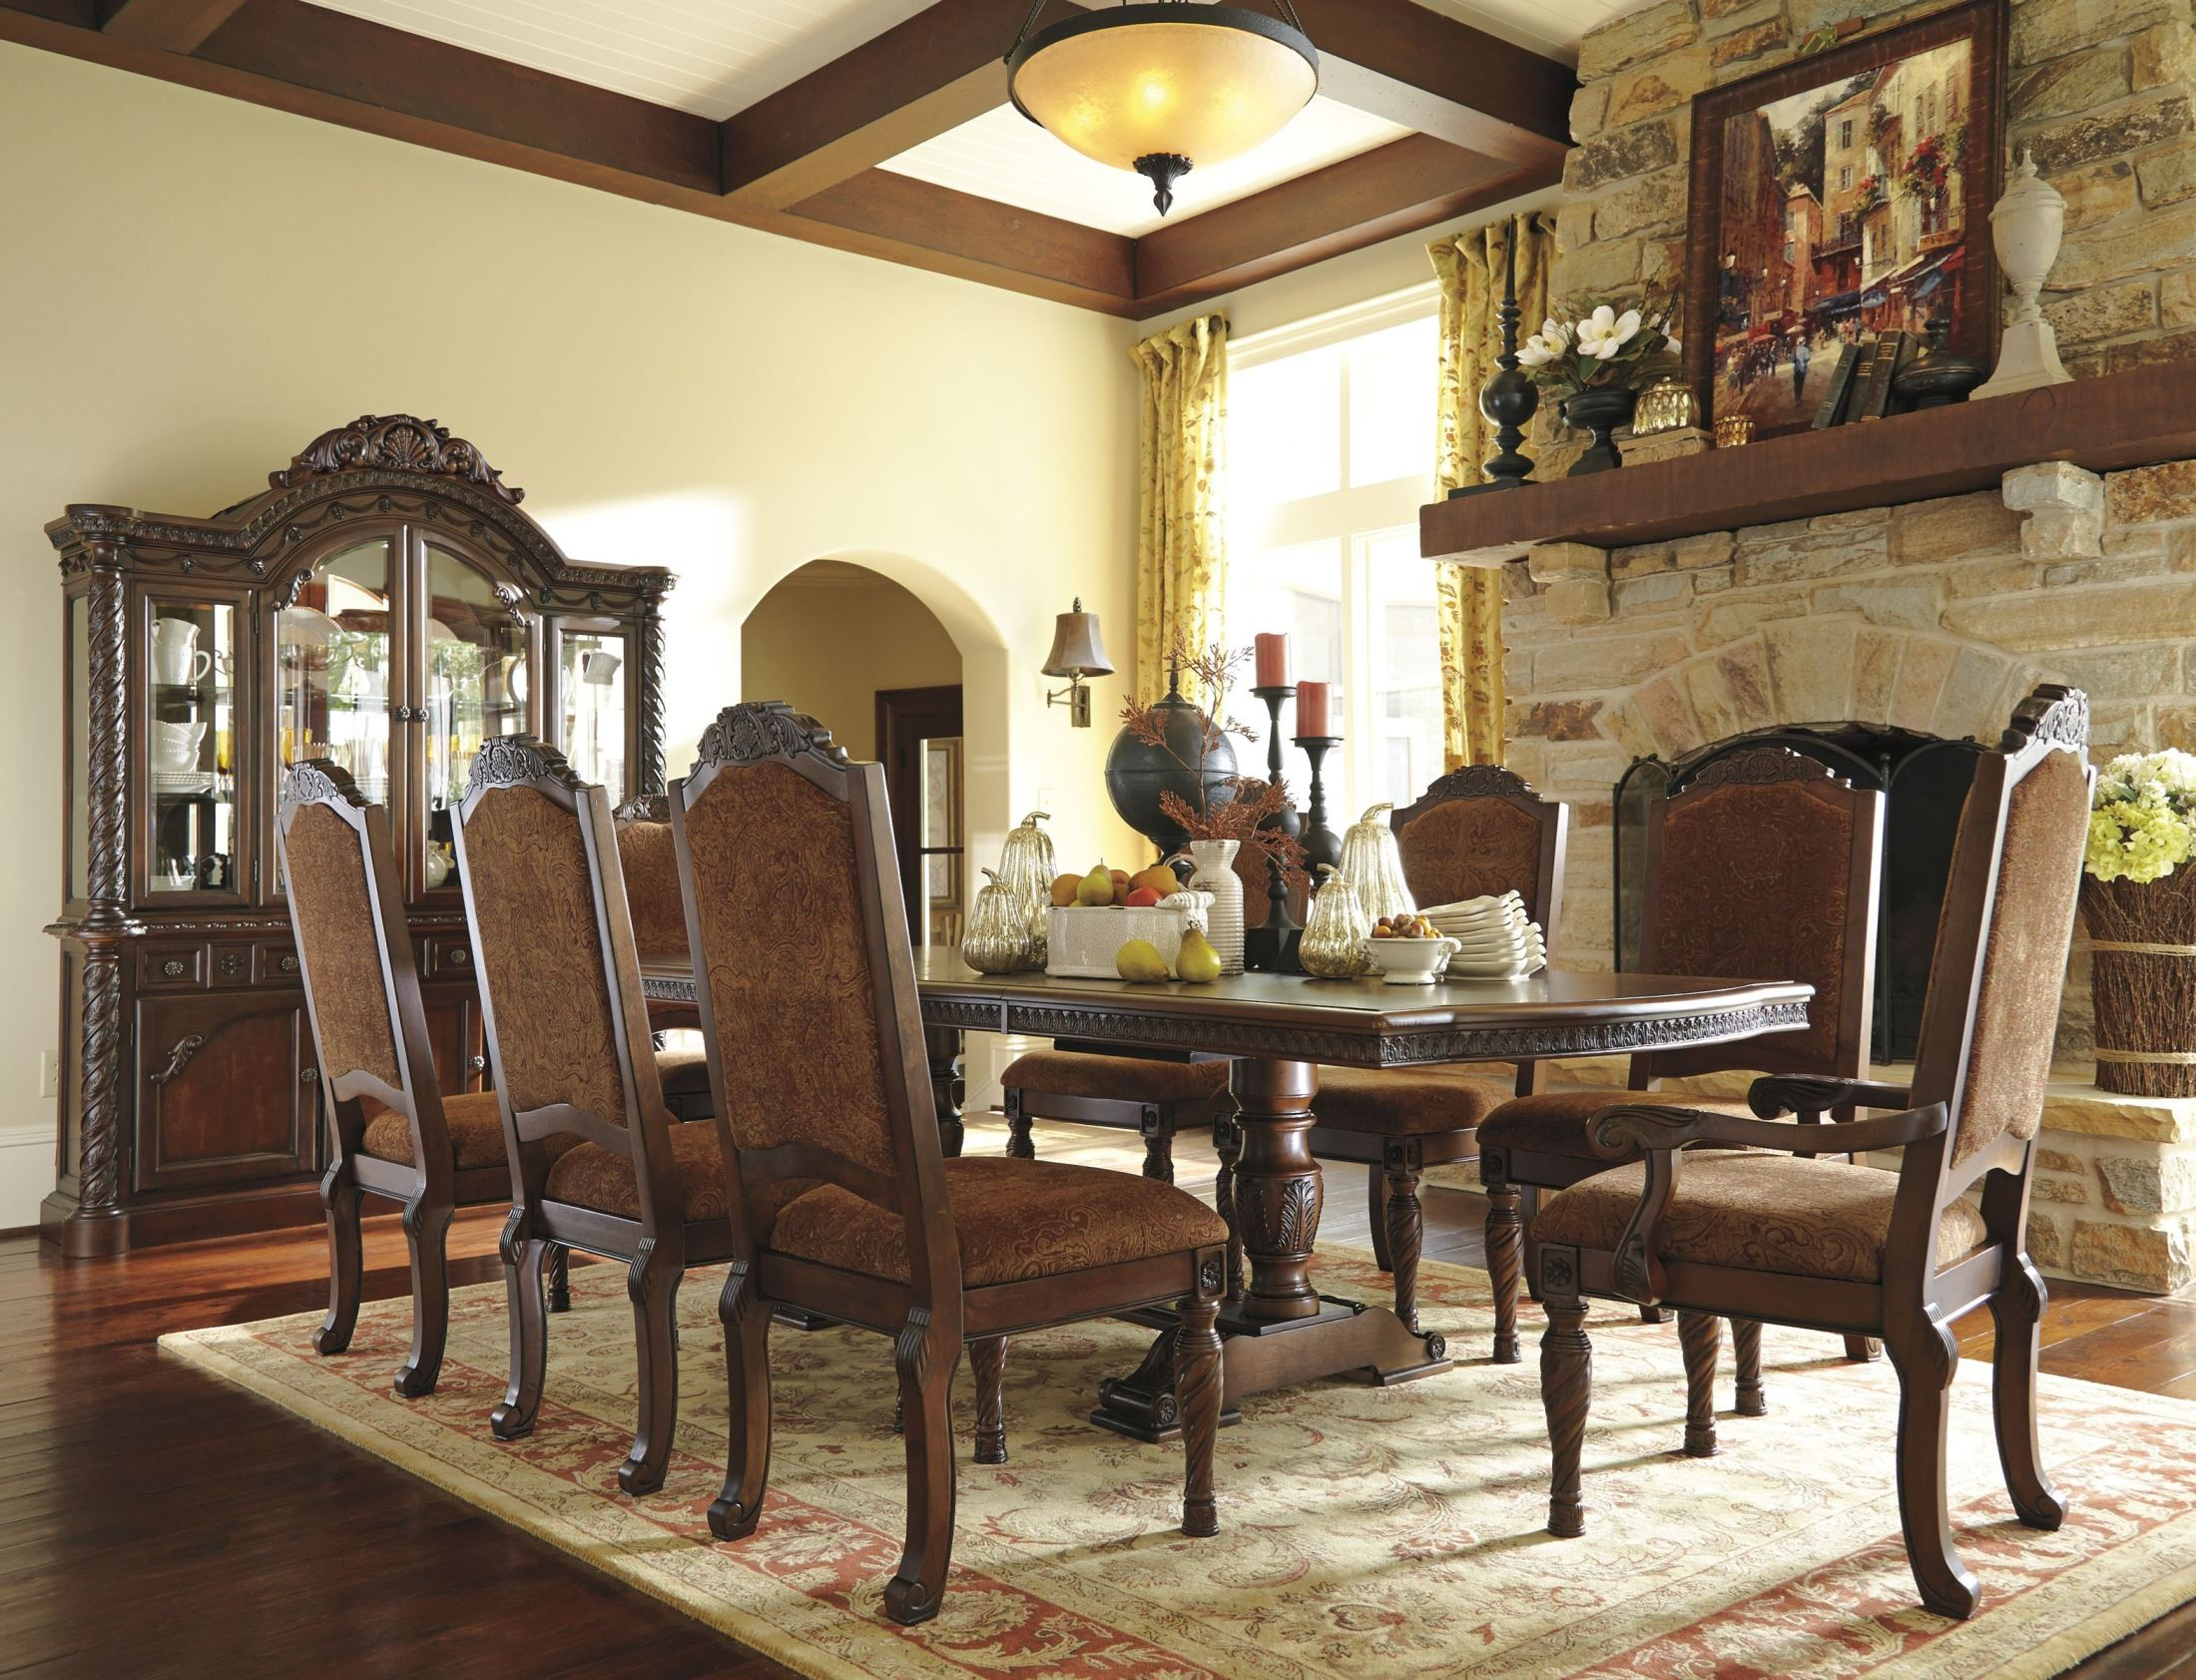 North shore double pedestal extendable dining room set from ashley coleman furniture - Ashley north shore dining room set ...